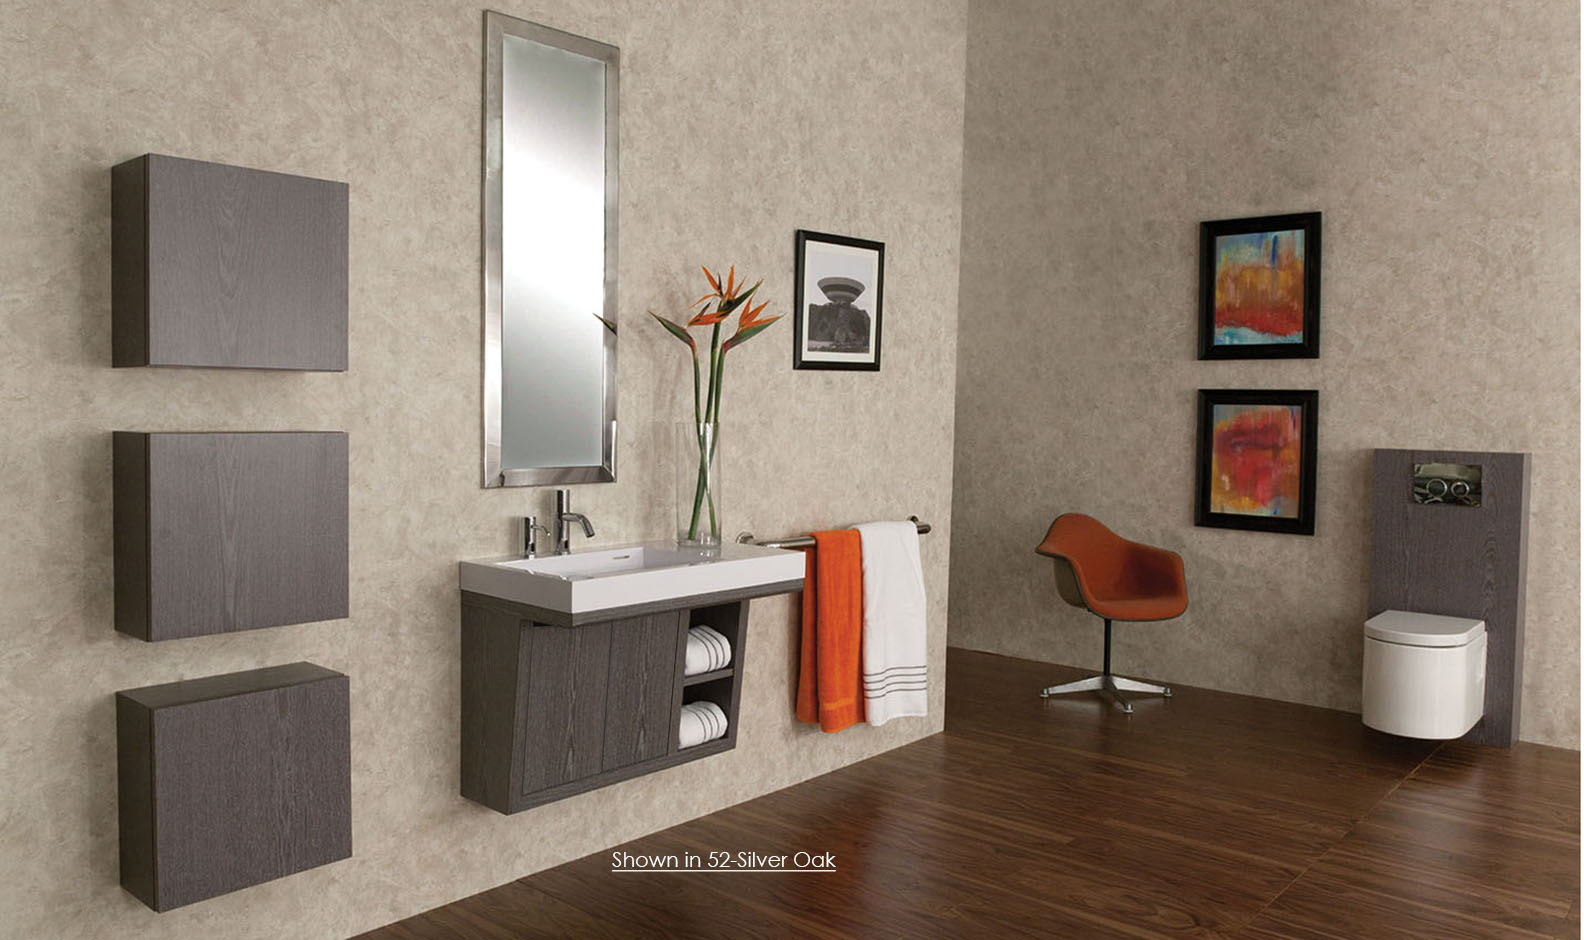 Lacava Luxury Bathroom Sinks Vanities Tubs Faucets Bathroom - Ada compliant bathroom tile